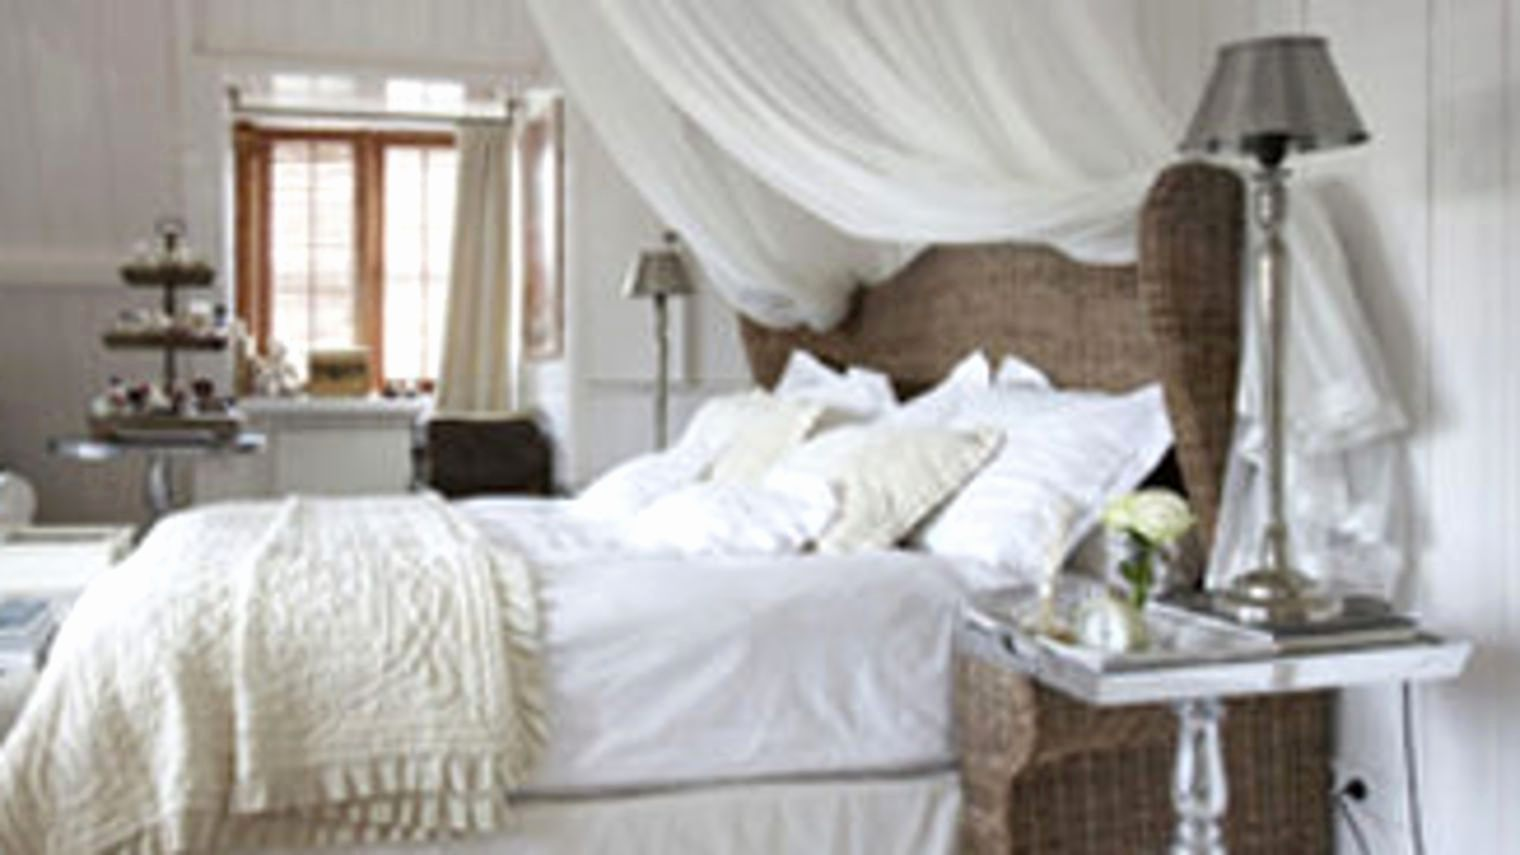 Lit Bebe Taupe Agréable Deco Chambre Campagne Romantique Frais Deco Chambre Campagne